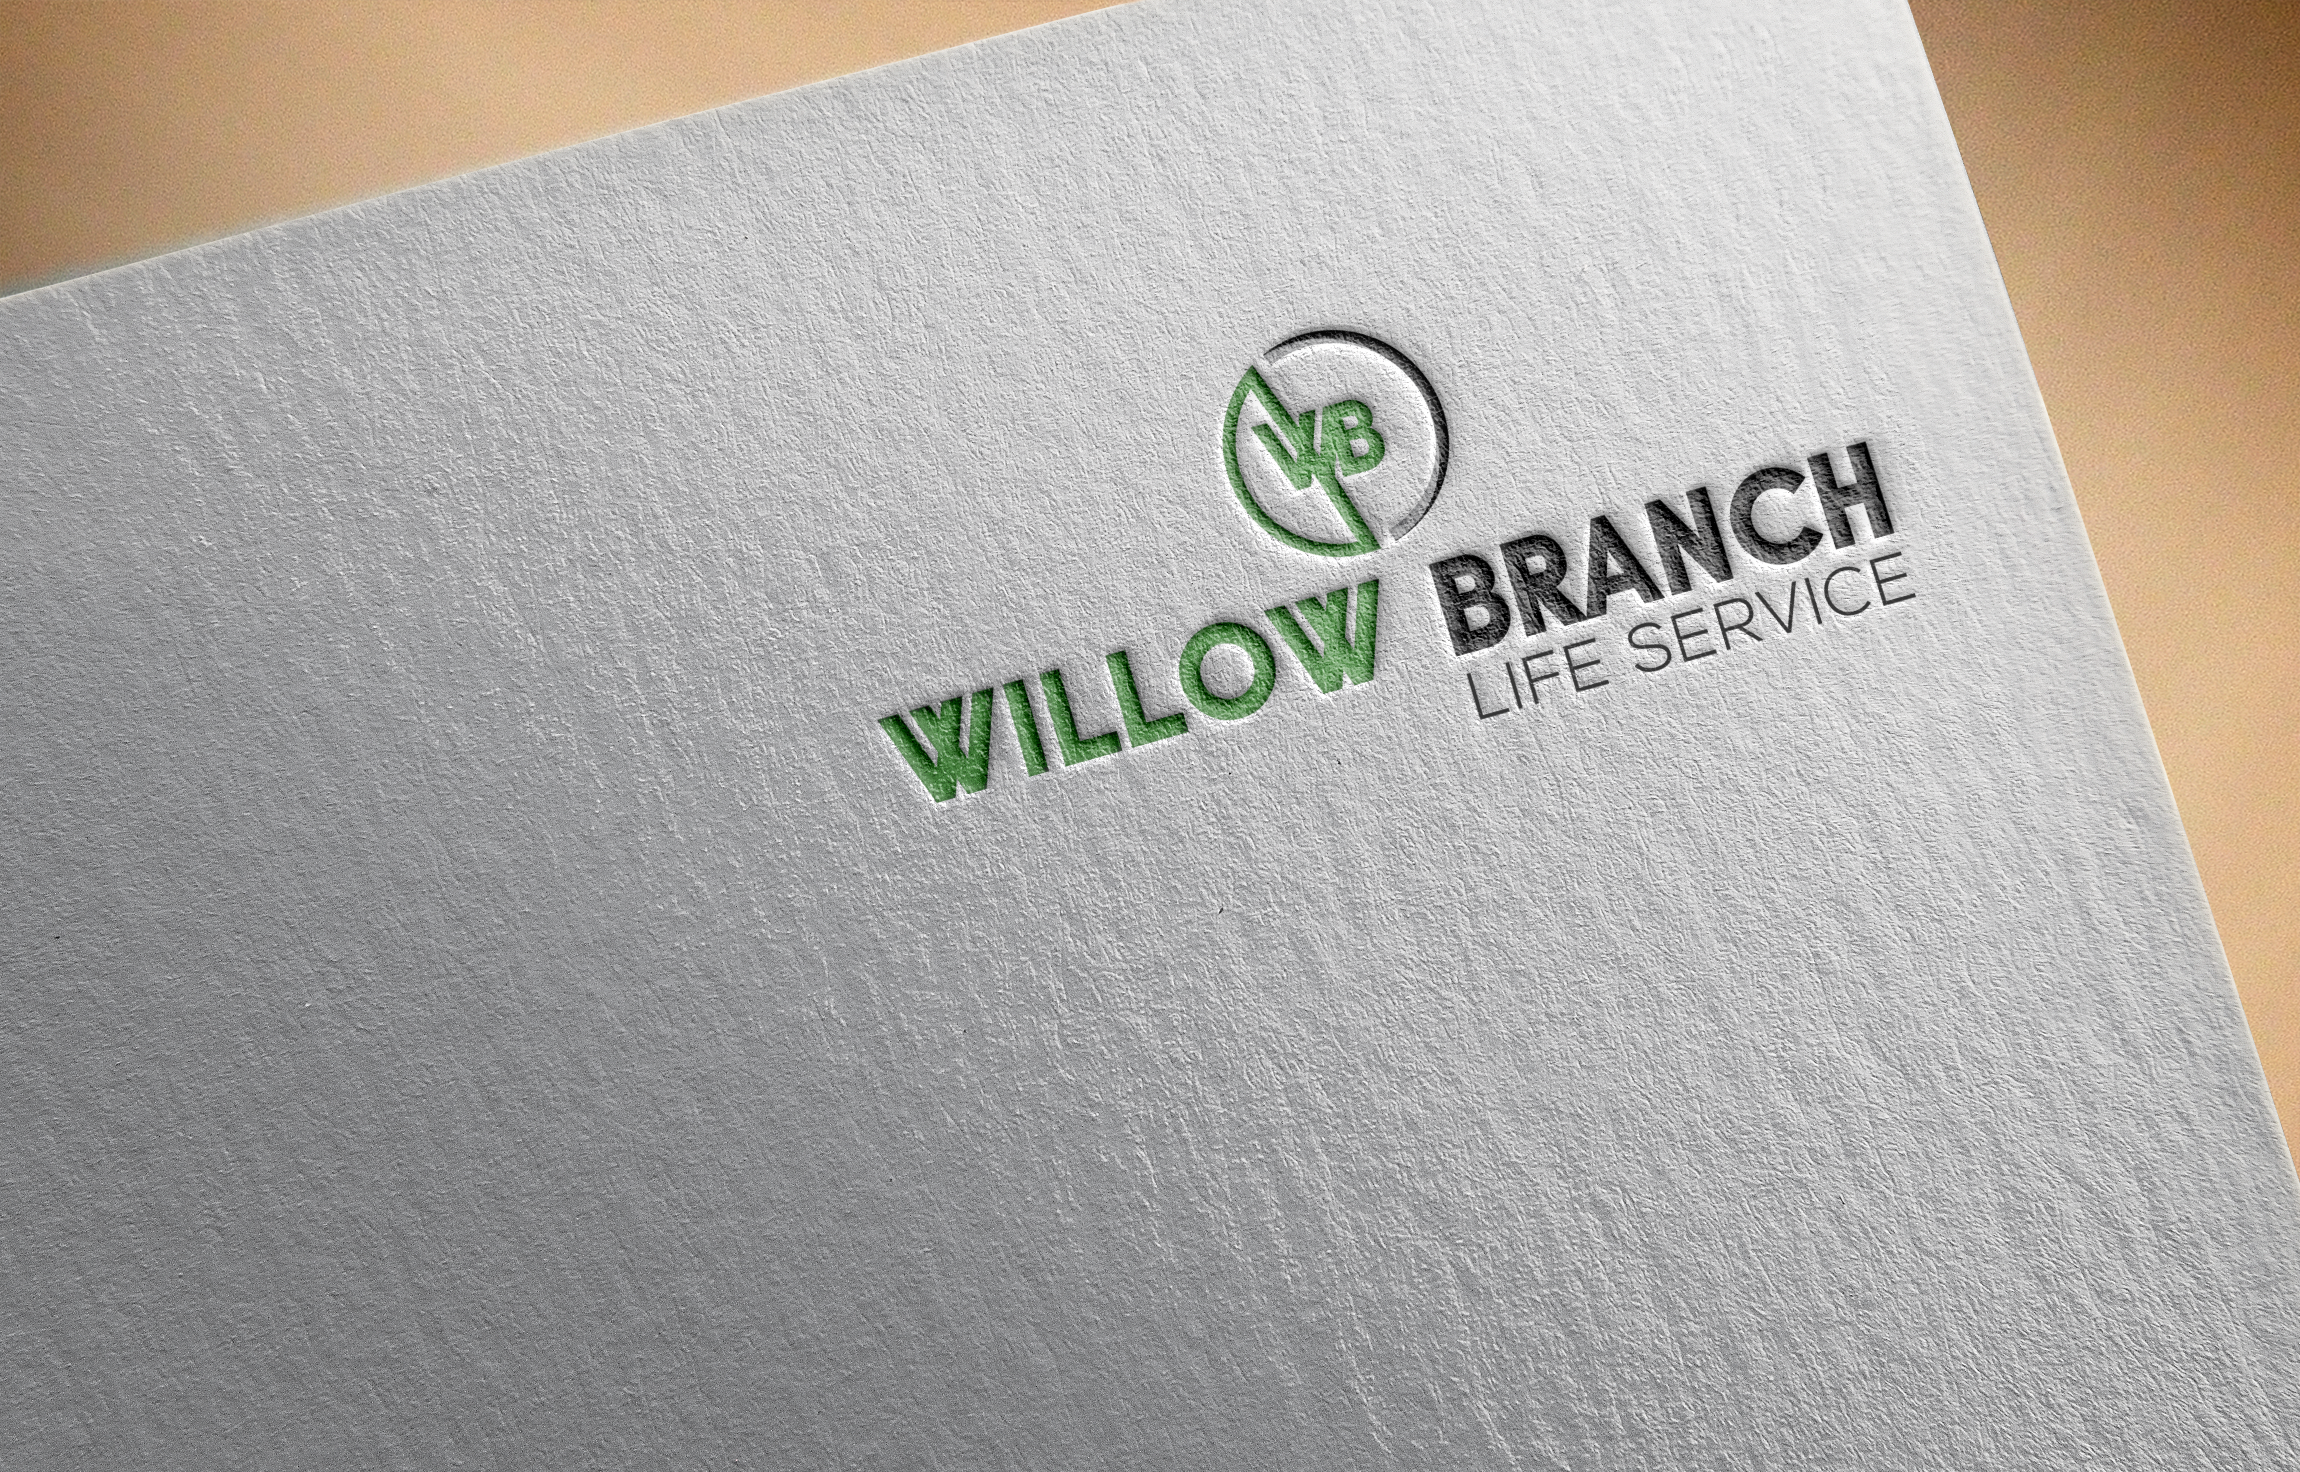 Logo Design by Ayrin Akter - Entry No. 89 in the Logo Design Contest Artistic Logo Design for Willow Branch Life Service.